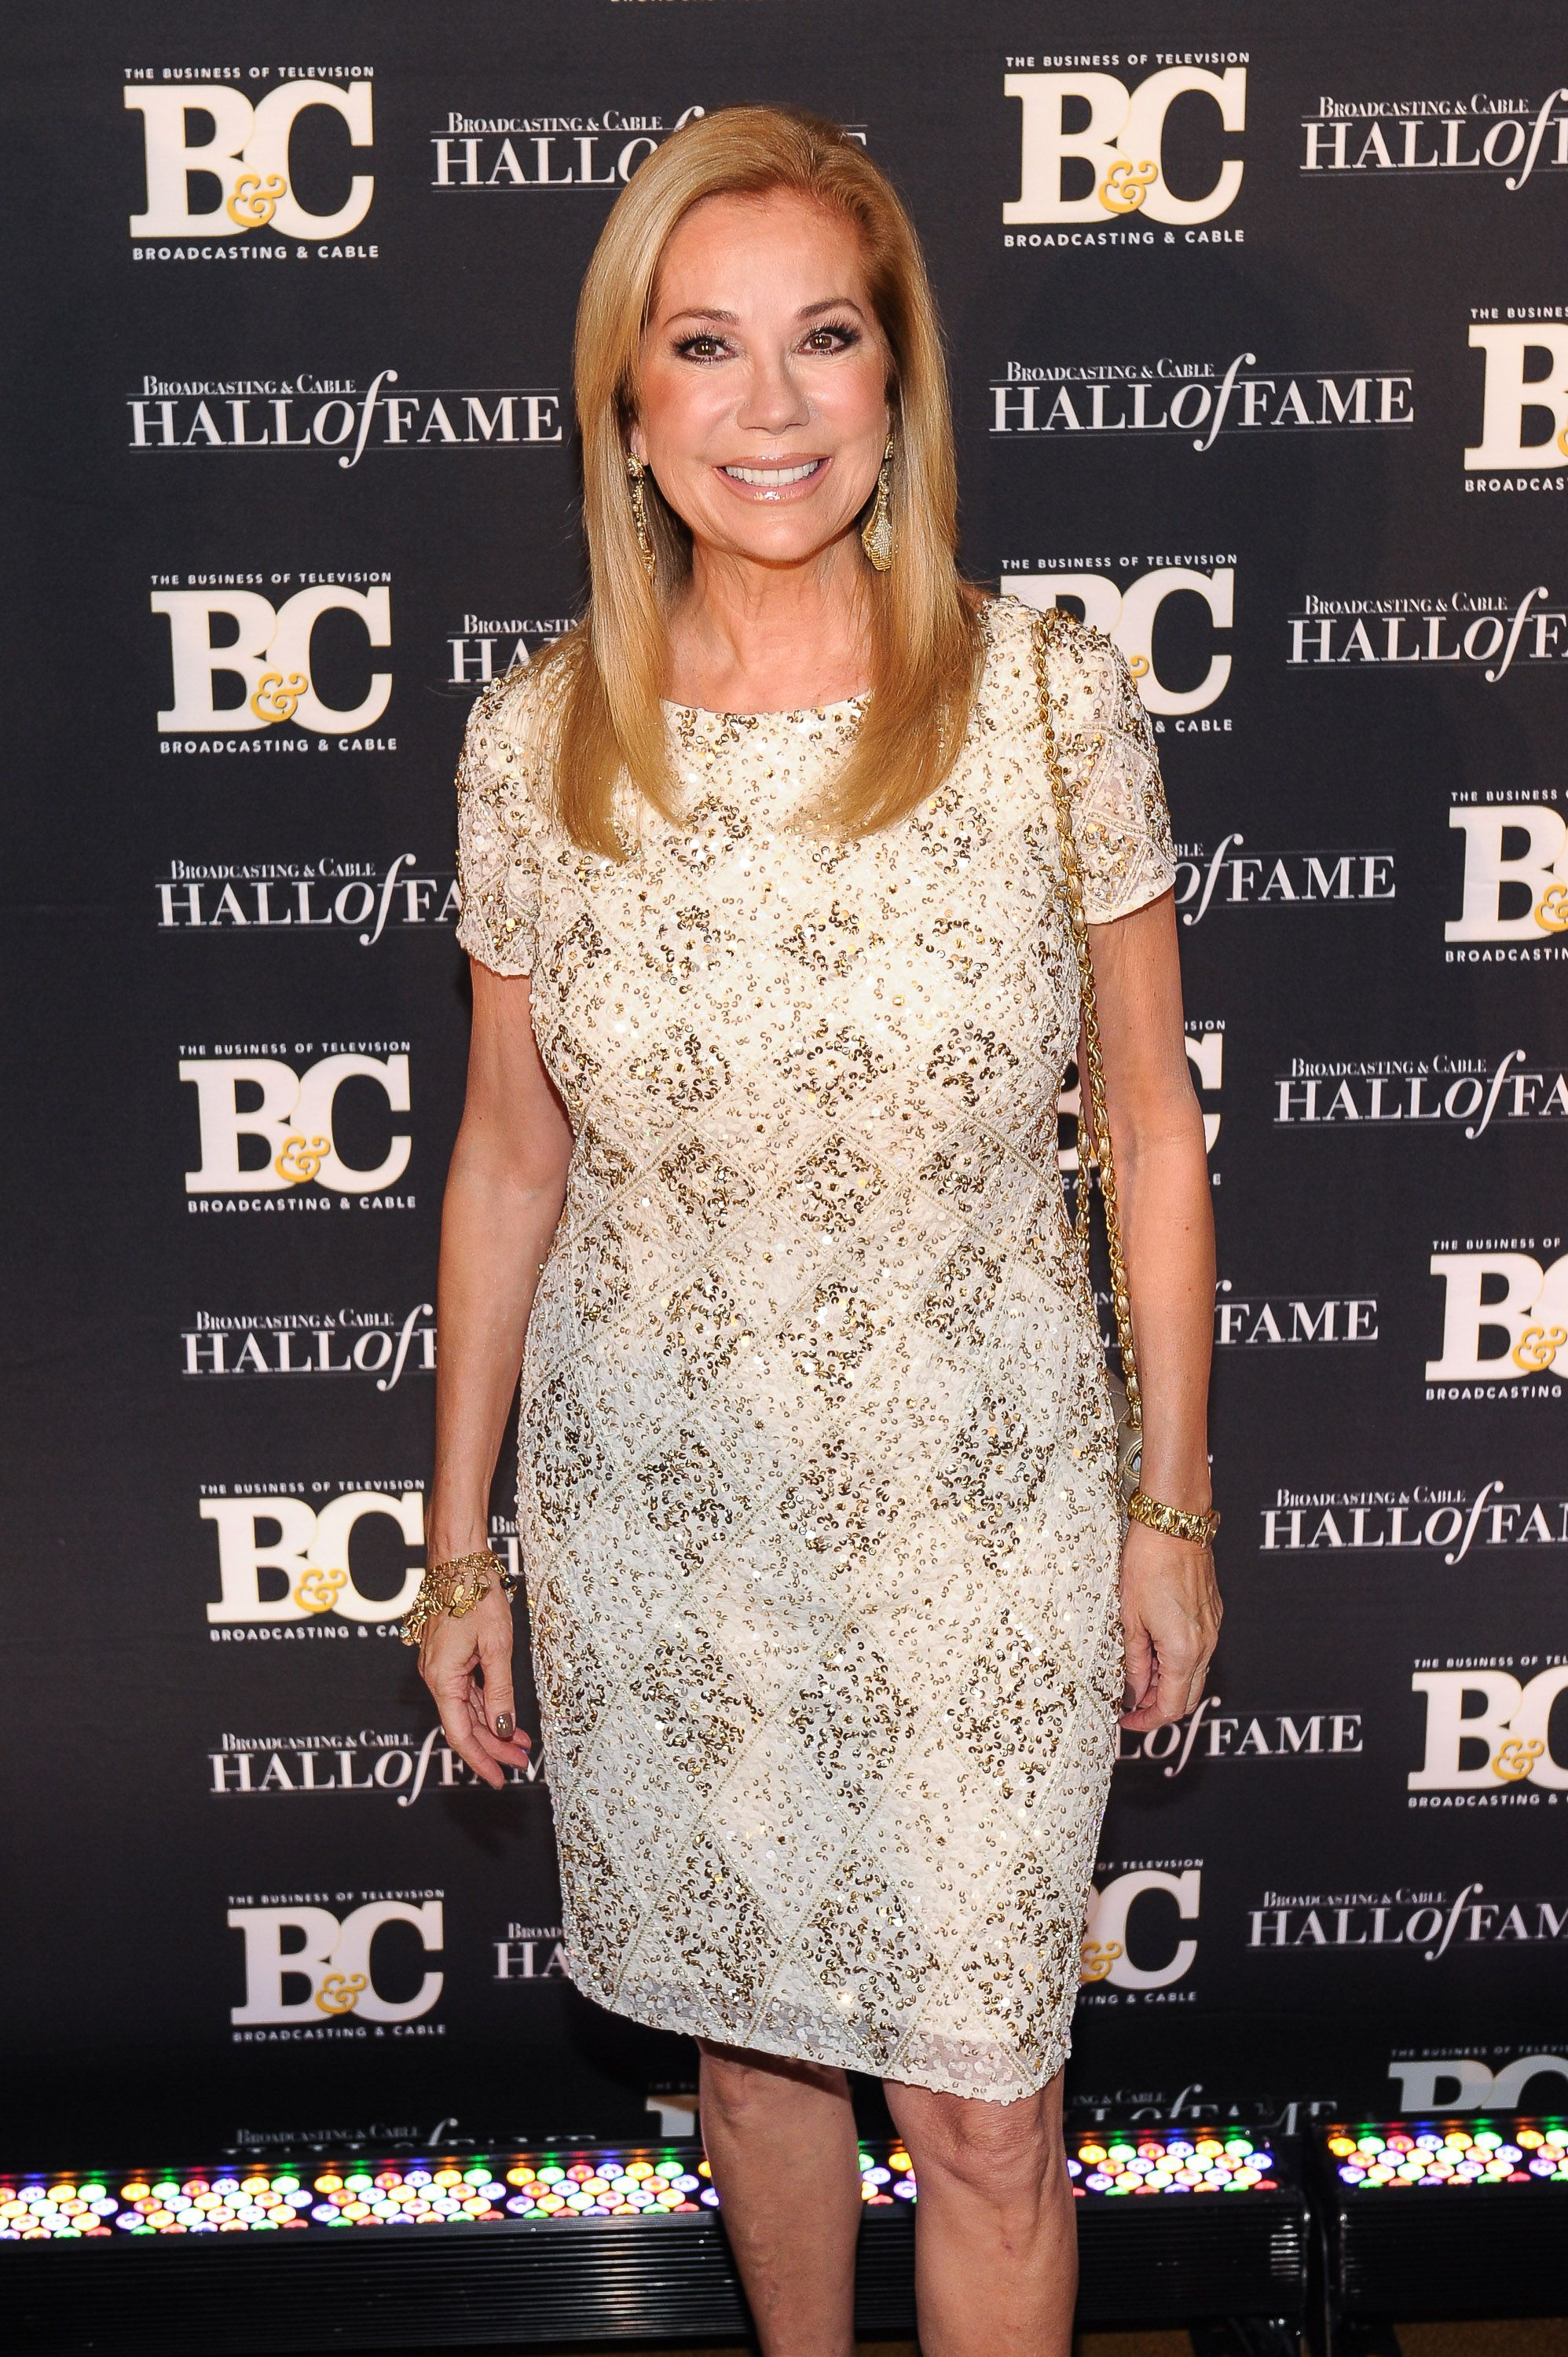 Kathie Lee Gifford attends Broadcasting and Cable Hall Of Fame Awards 25th Anniversary Gala at The Waldorf Astoria on October 20, 2015 in New York City. | Photo: Getty Images.